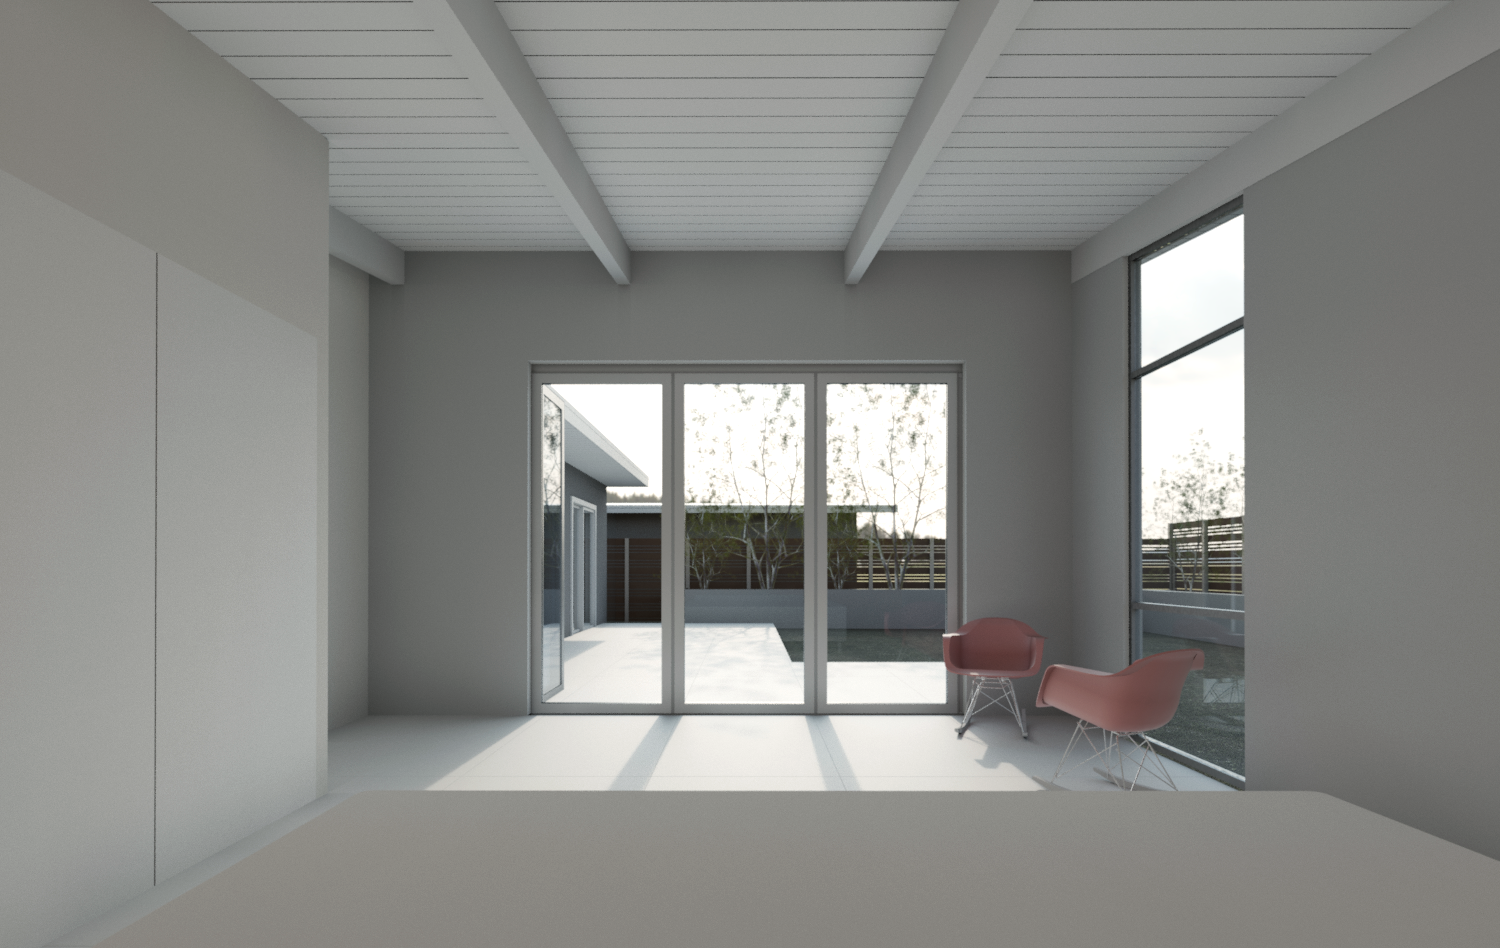 KP-03 _3D_View_-_Master_Bedroom_from_inside_to_outside.png